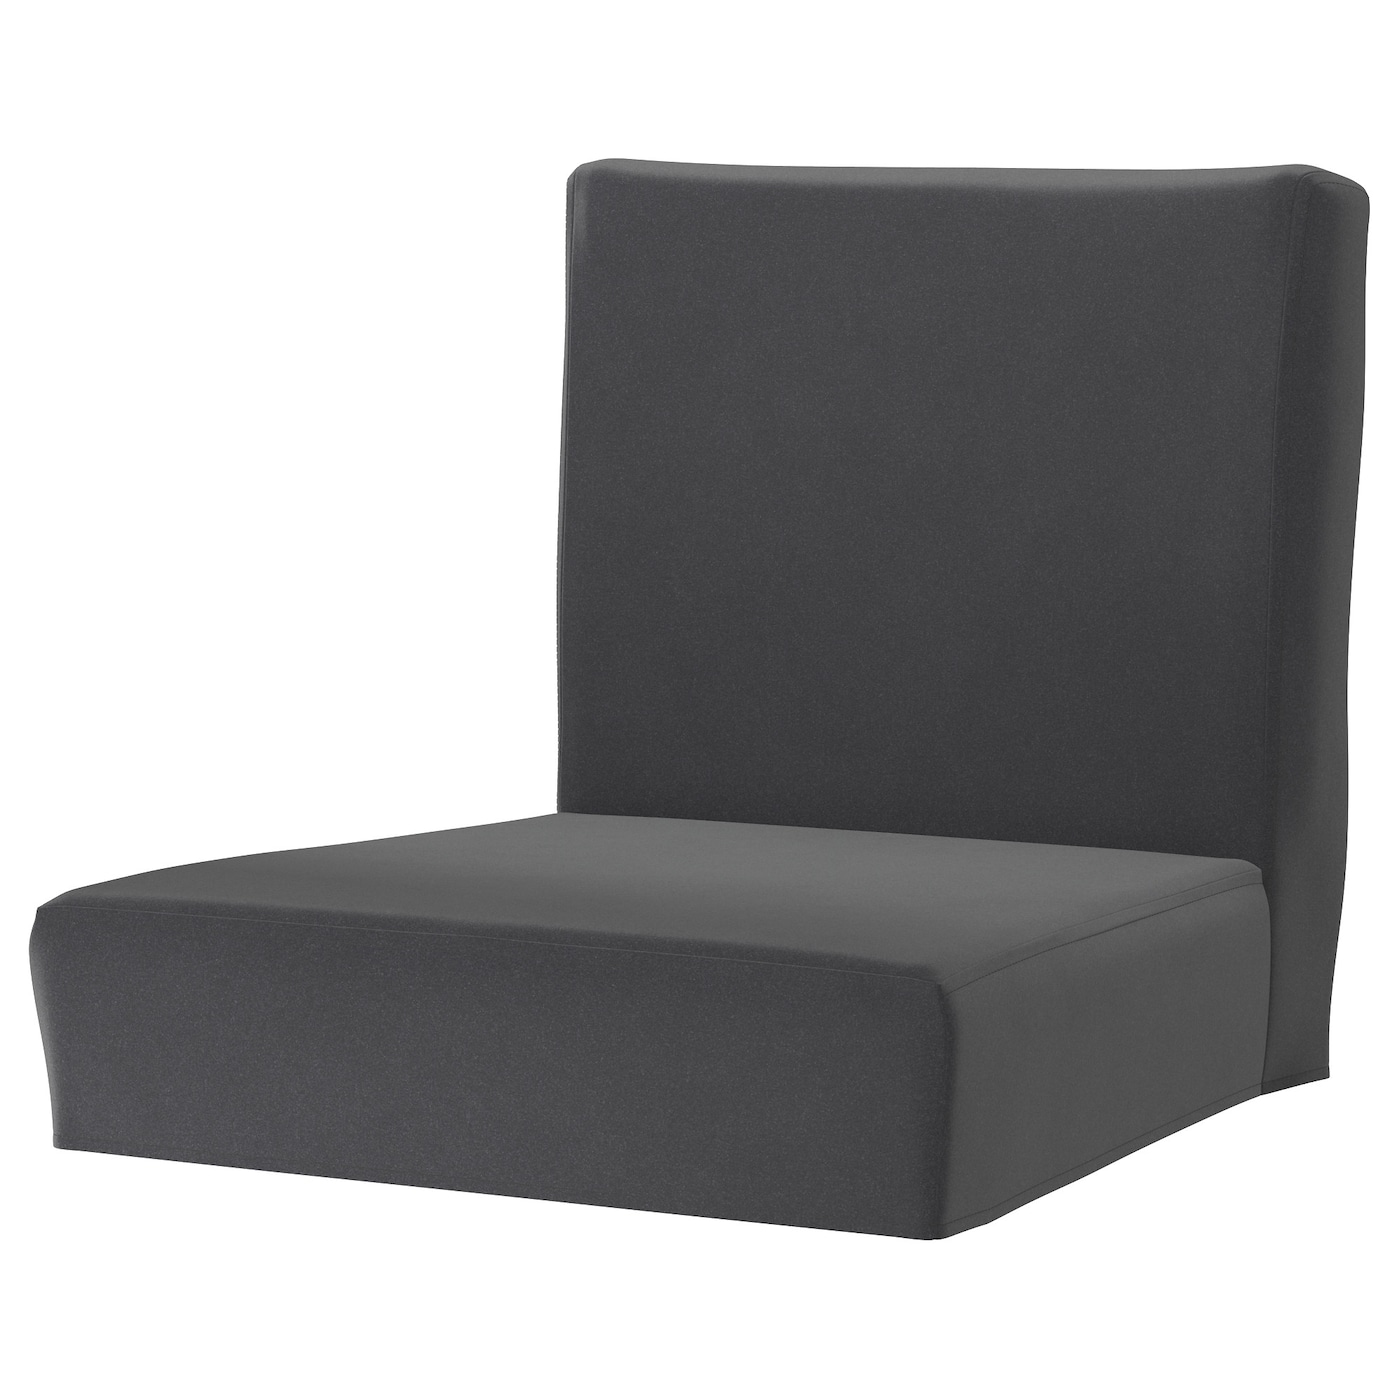 henriksdal housse pr tabouret bar avec dossier djuparp gris fonc ikea. Black Bedroom Furniture Sets. Home Design Ideas